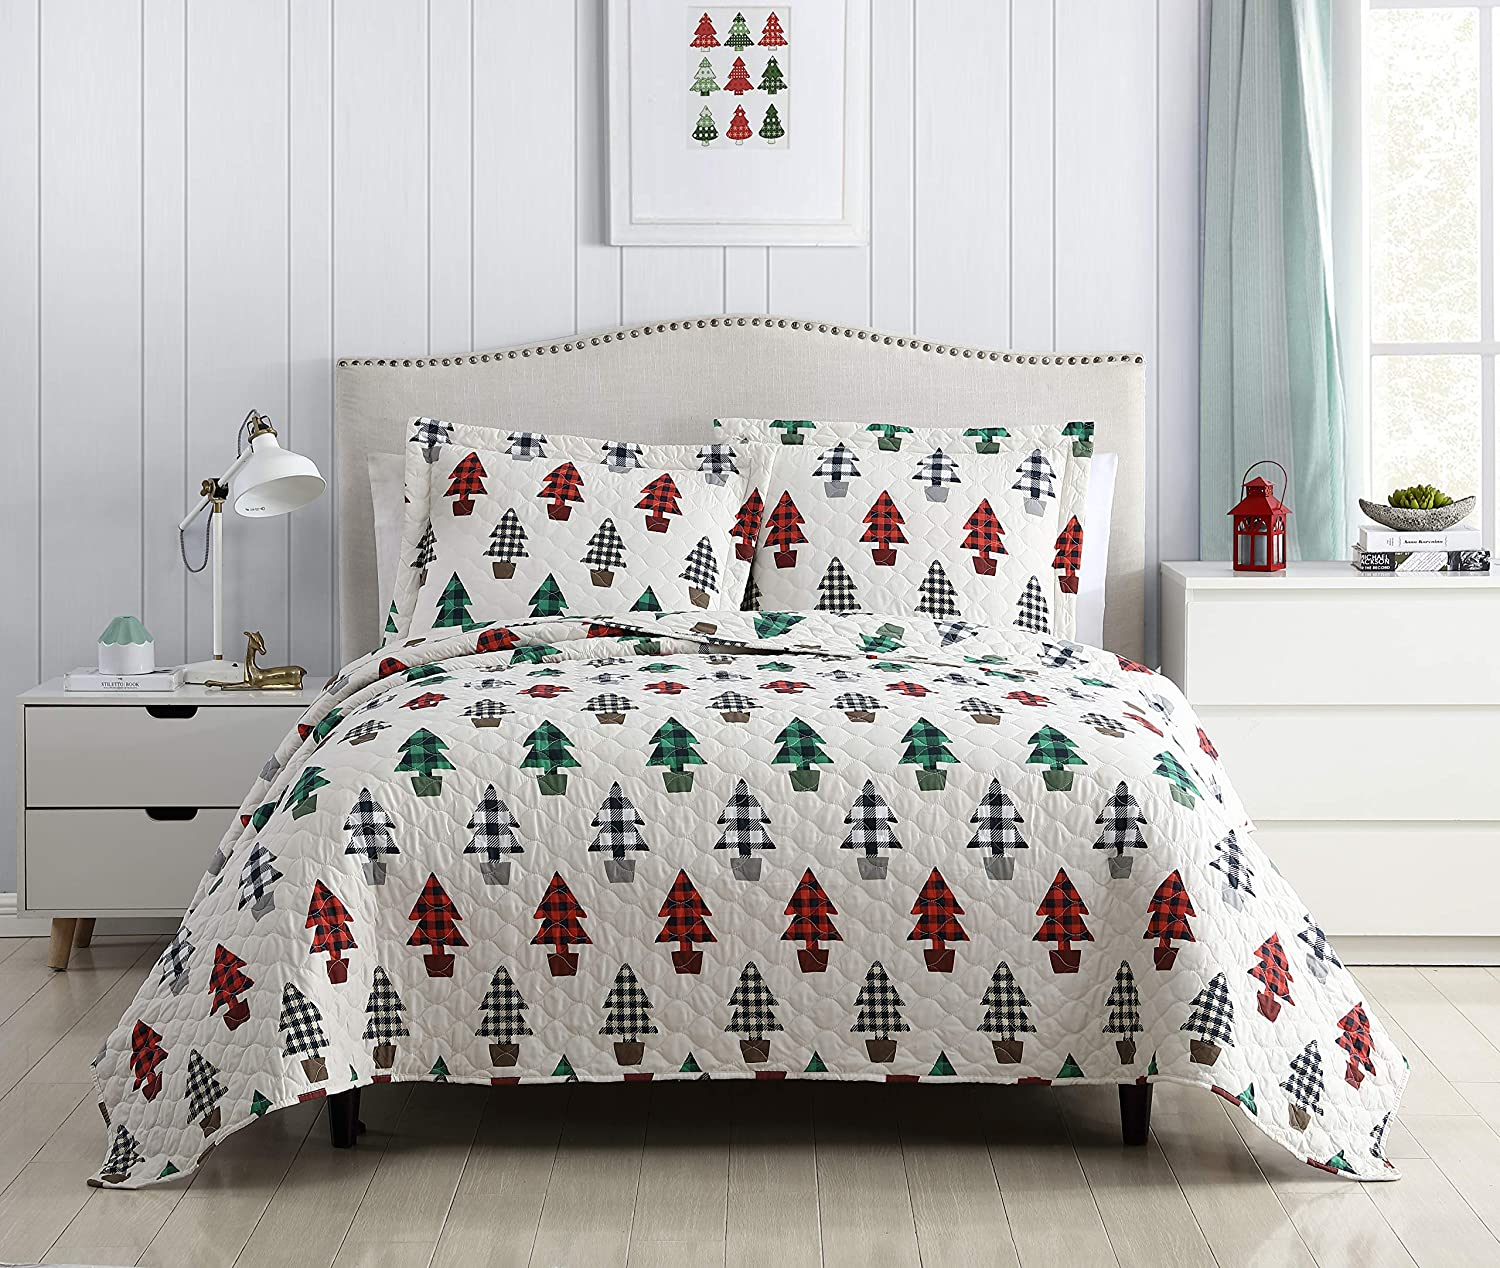 SL Spirit Linen Home EST. 1988 Holiday Collection Quilt Set - Ultra-Soft, Reversible Coverlet Bedding - Oversized Quilt with Matching Pillow Shams, King, Christmas